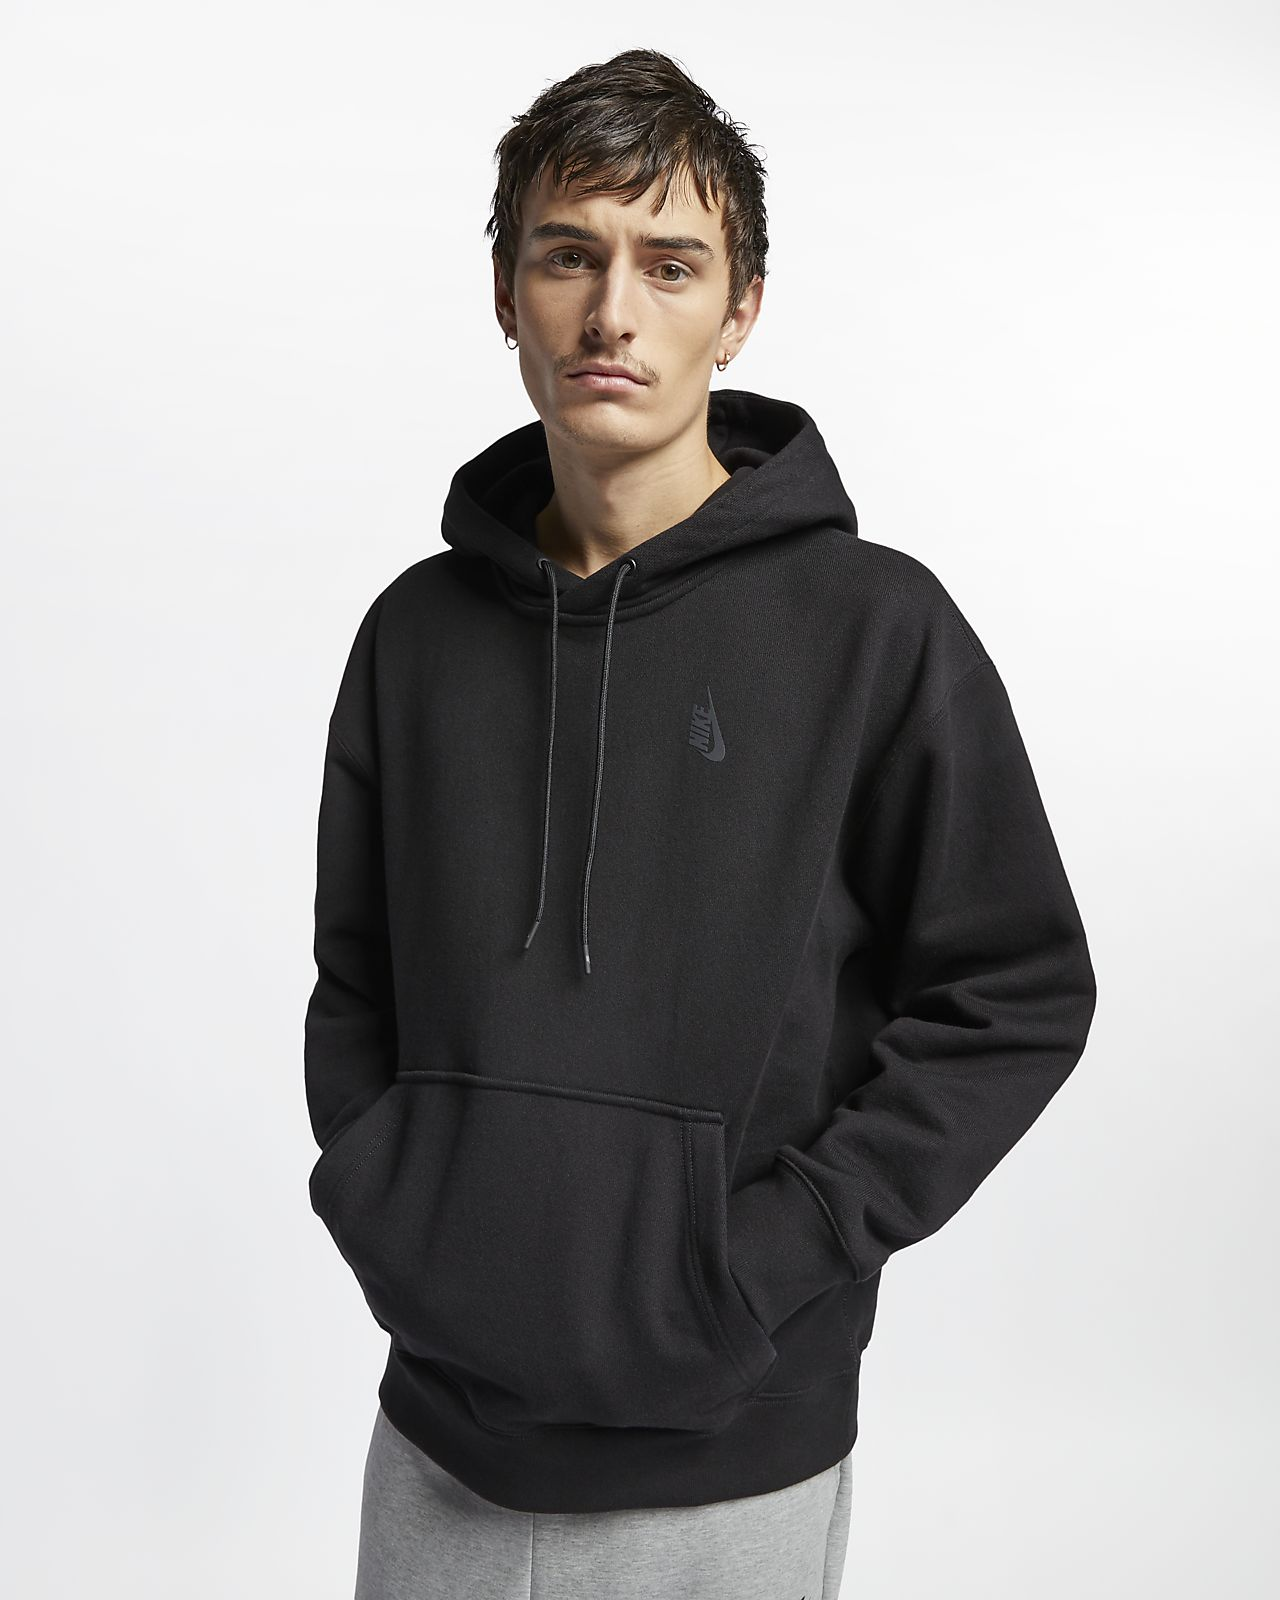 NikeLab Collection Men's Fleece Pullover Hoodie